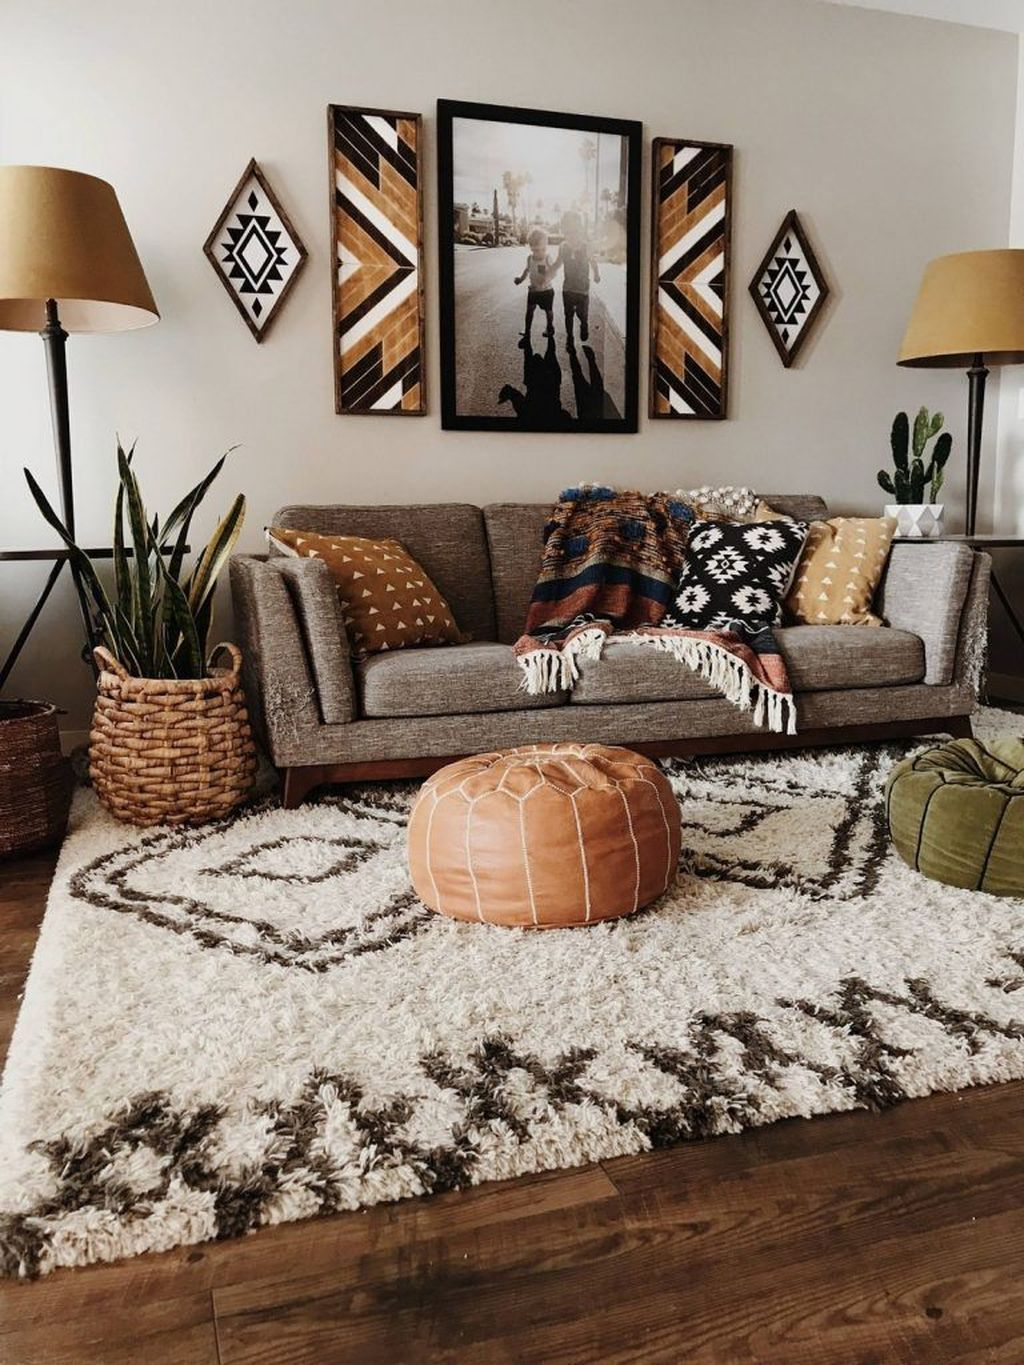 34 The Best Rustic Bohemian Living Room Decor Ideas Homyhomee In